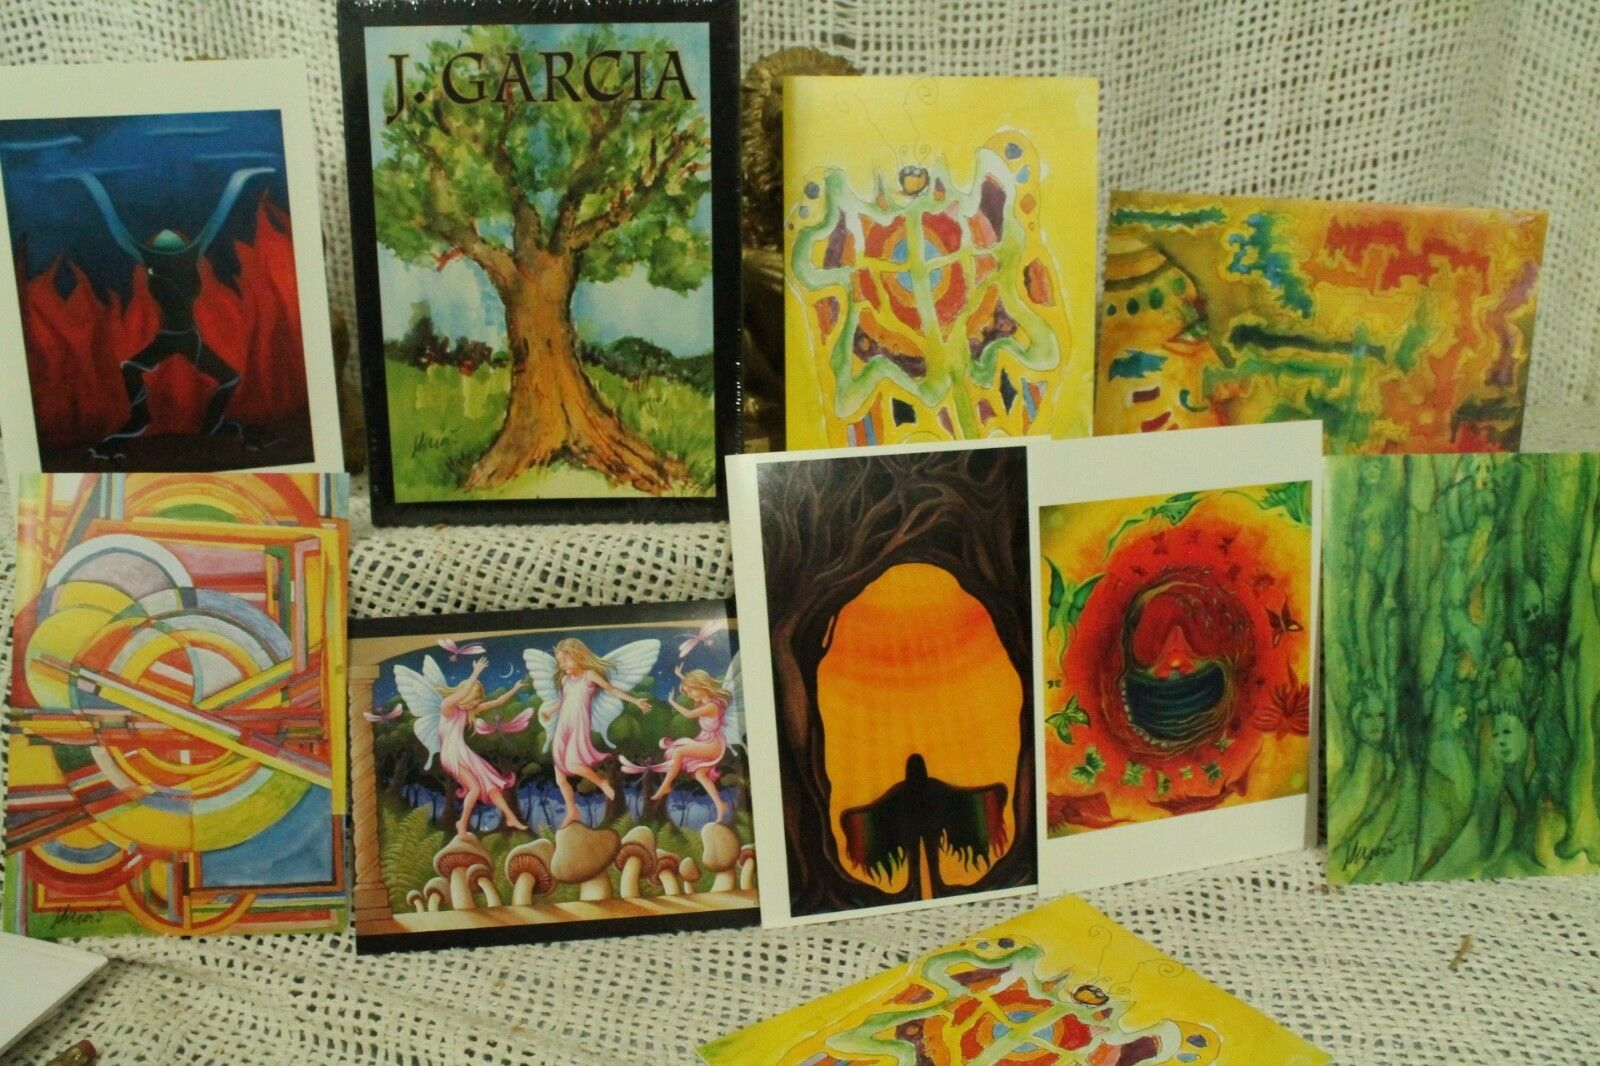 Lot grateful greetings jerry garcia grateful dead greeting cards lot grateful greetings jerry garcia grateful dead greeting cards plus others 1 of 3only 1 available see more m4hsunfo